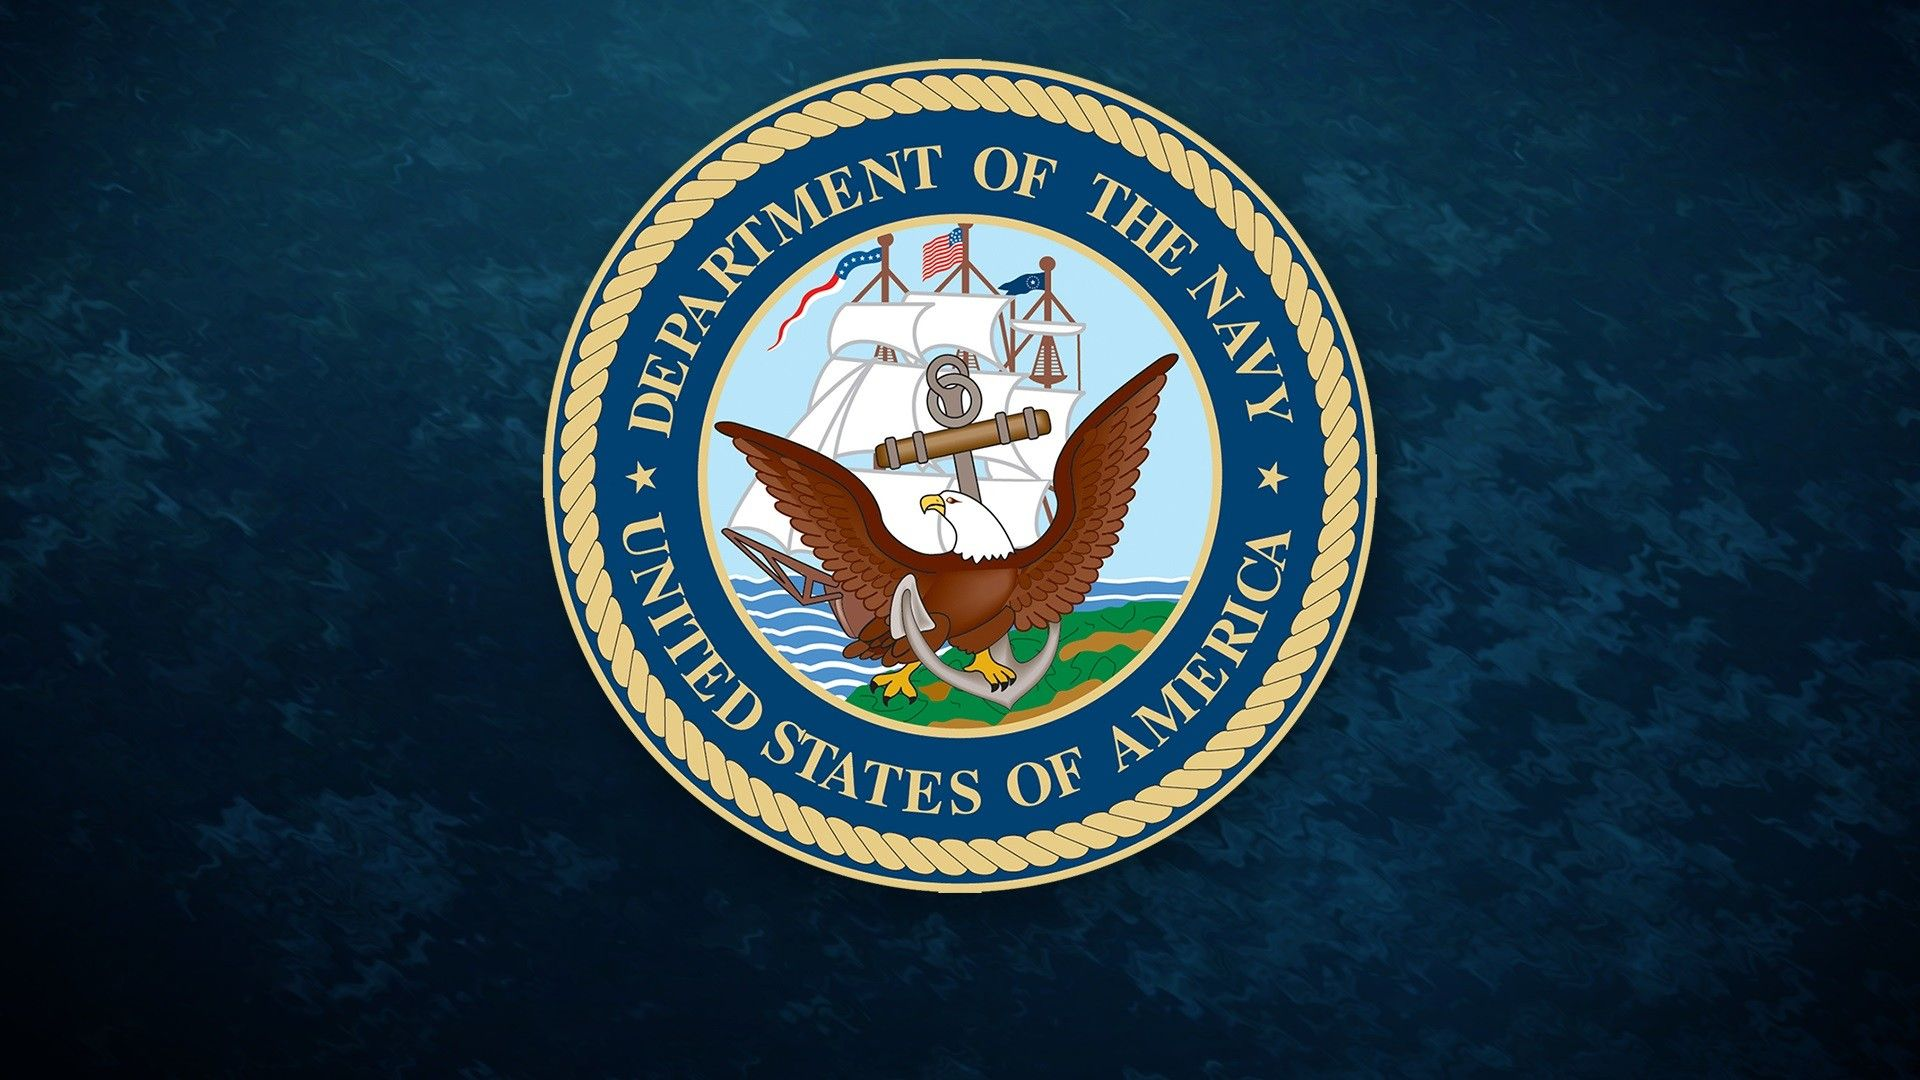 1920x1080 US Navy Images Logo Wallpaper (54+ images)